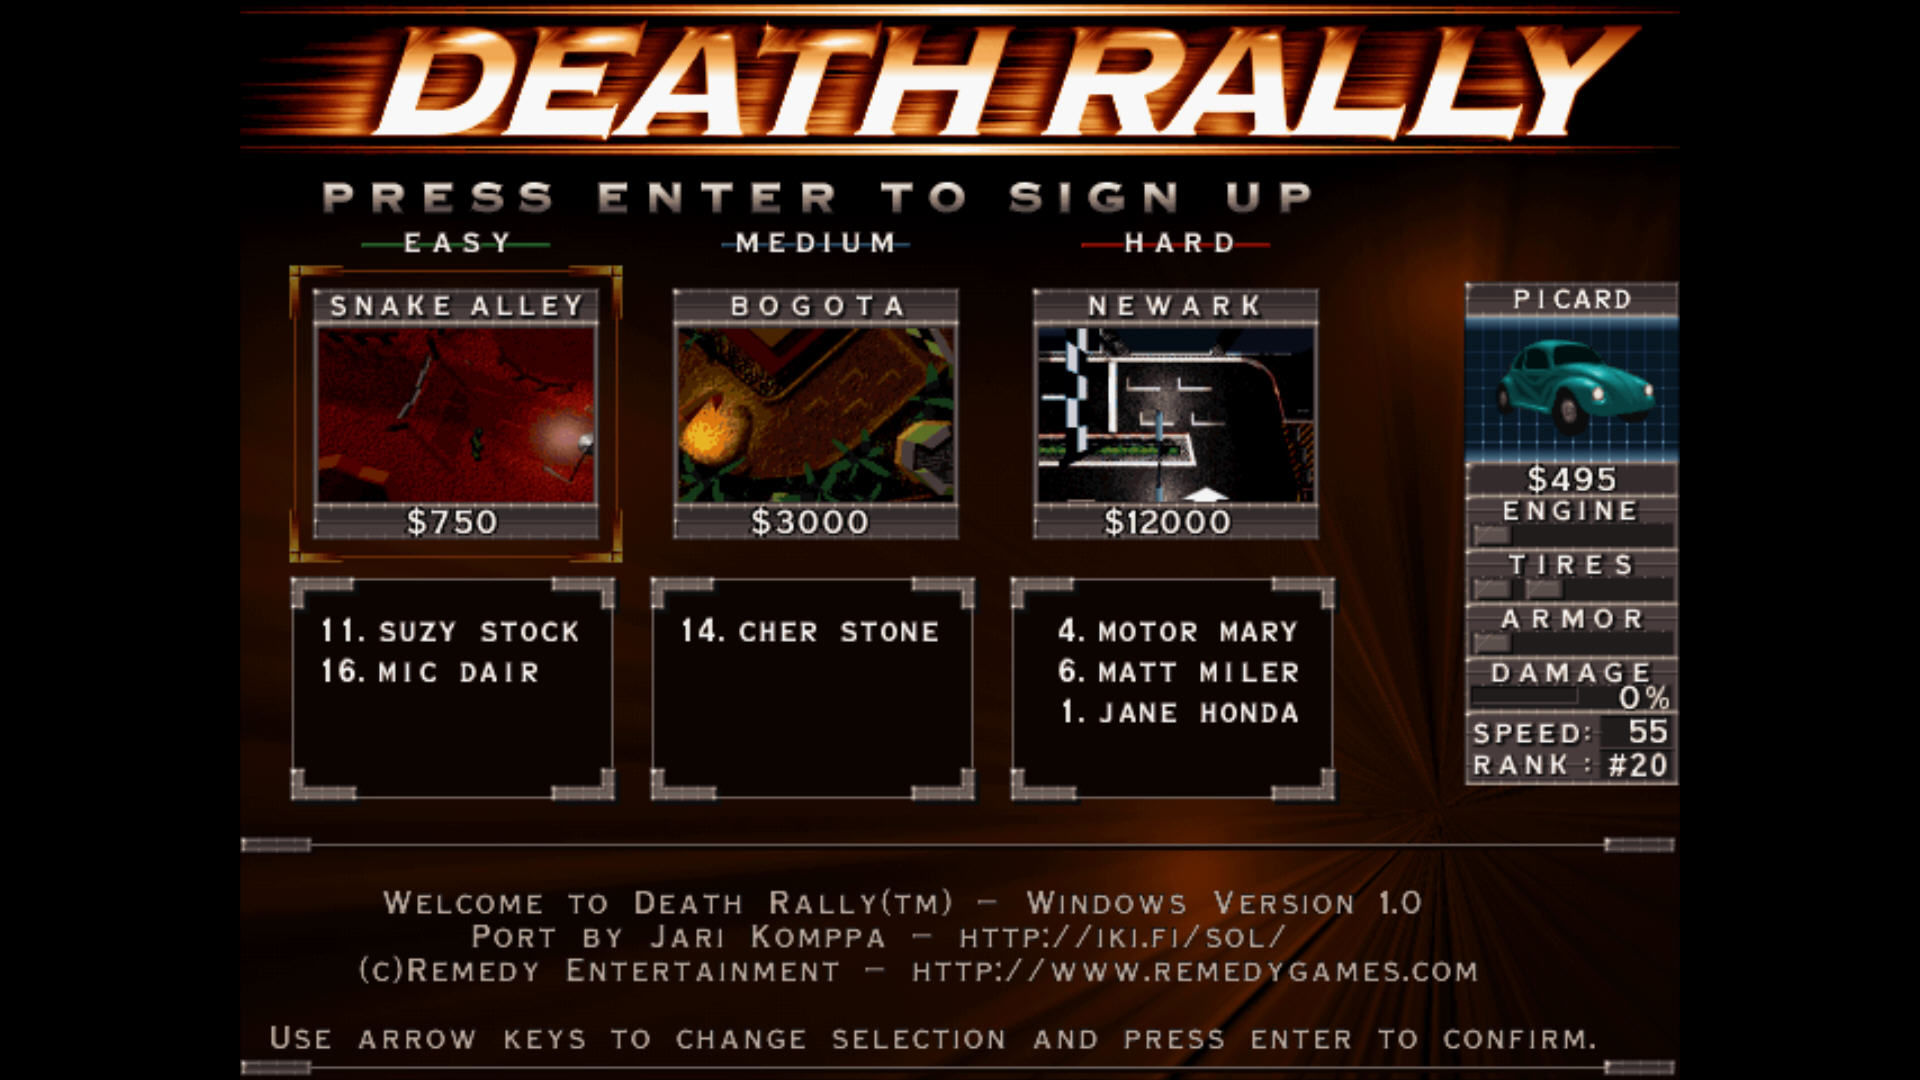 Death Rally Windows Difficulty selection